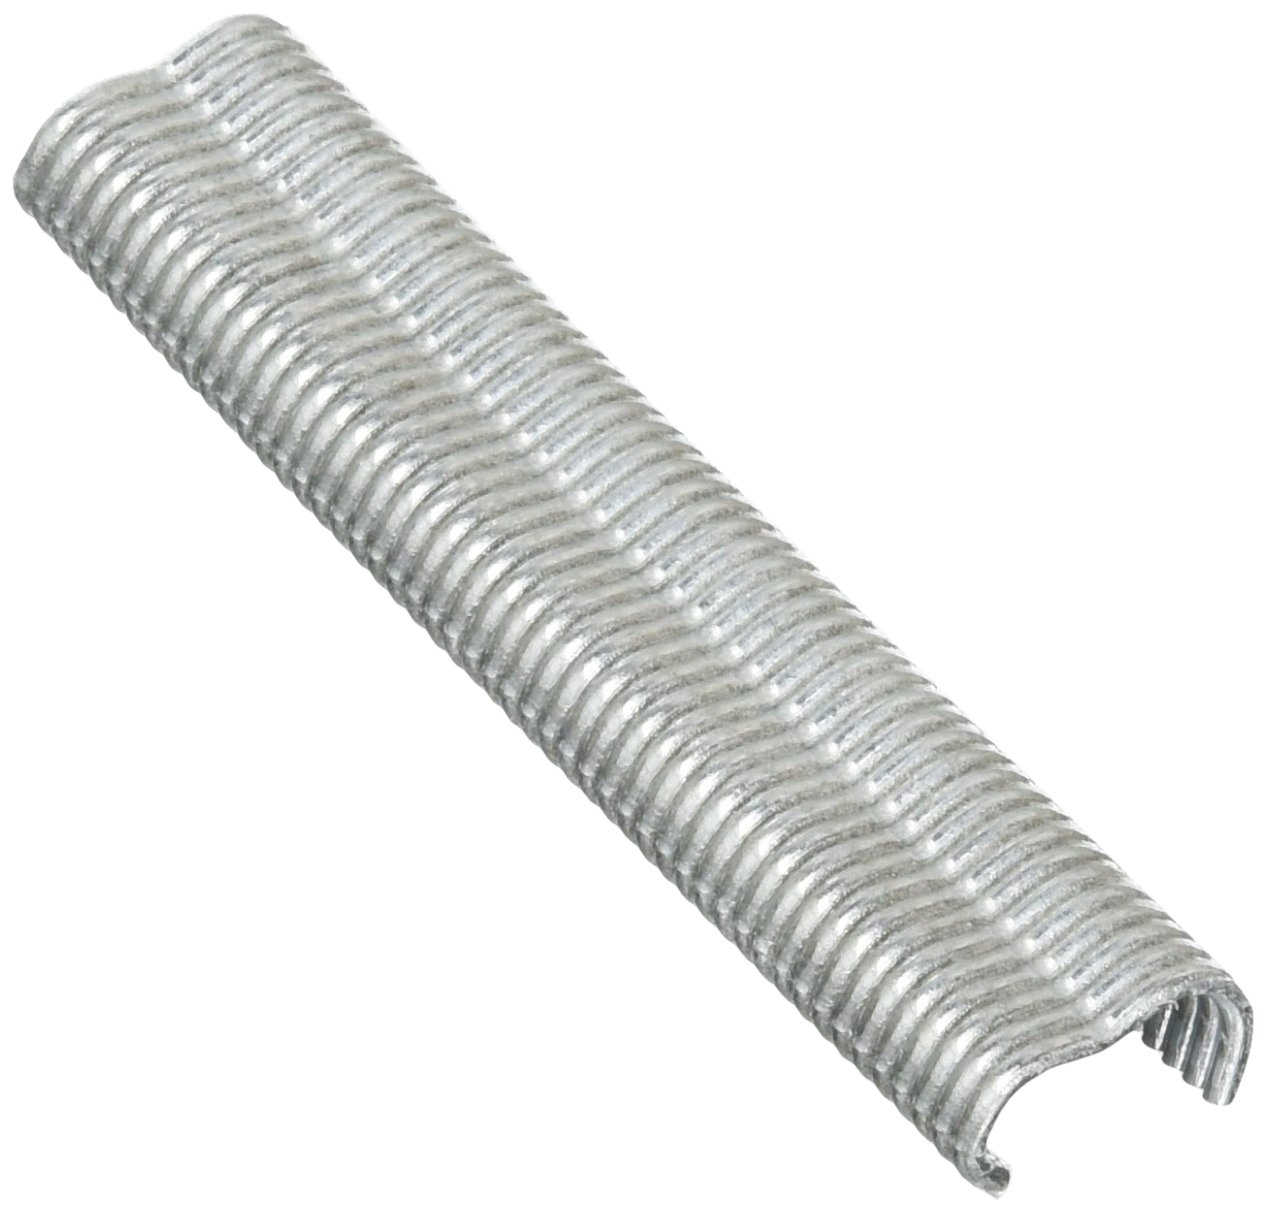 Malco HR2X Chain Link Fence Hog Rings by Malco